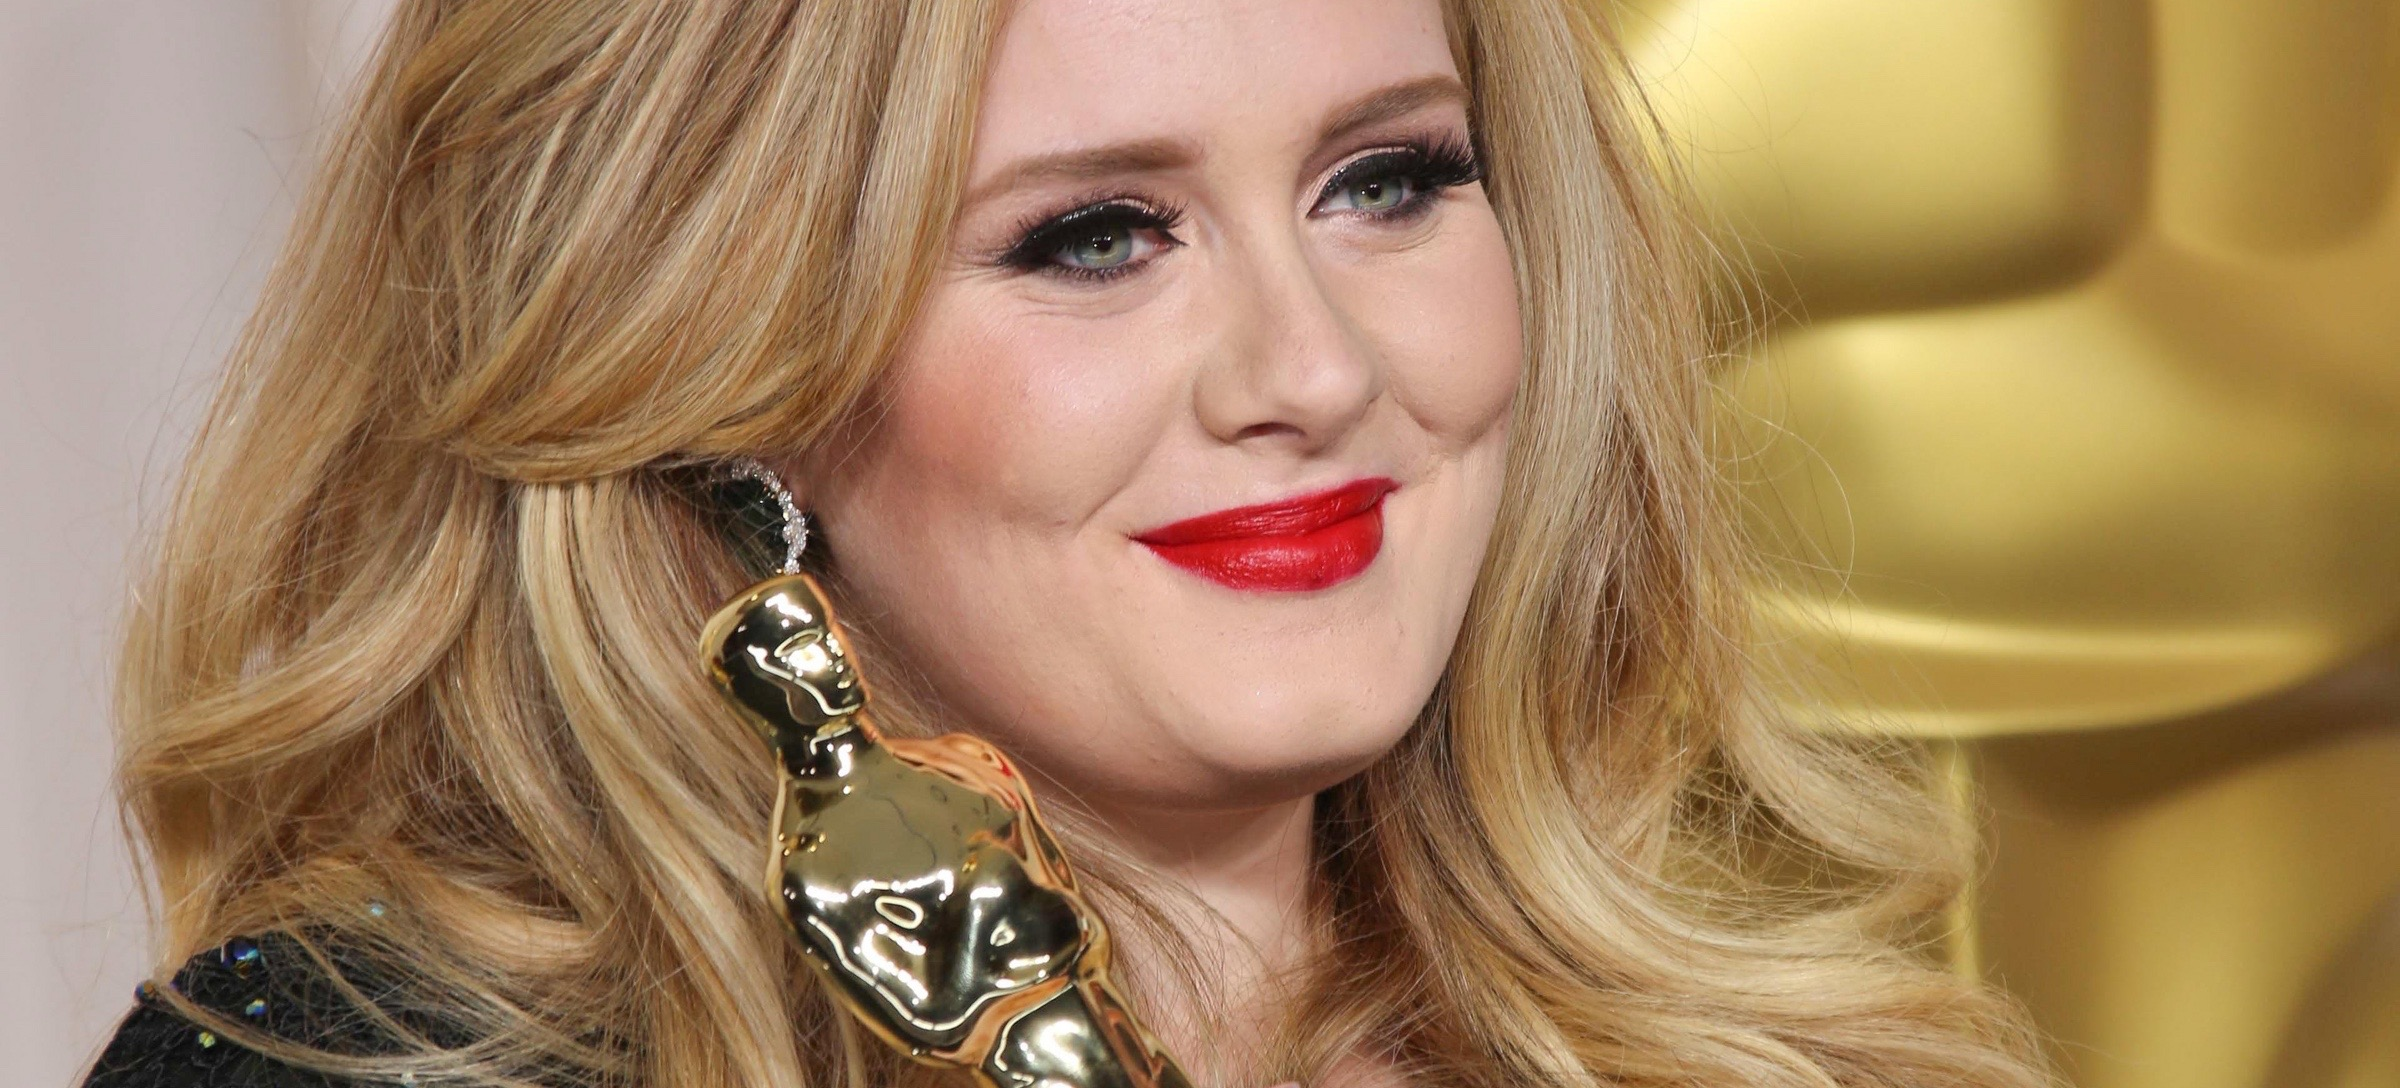 9 Beauty Lessons To Learn From Adele